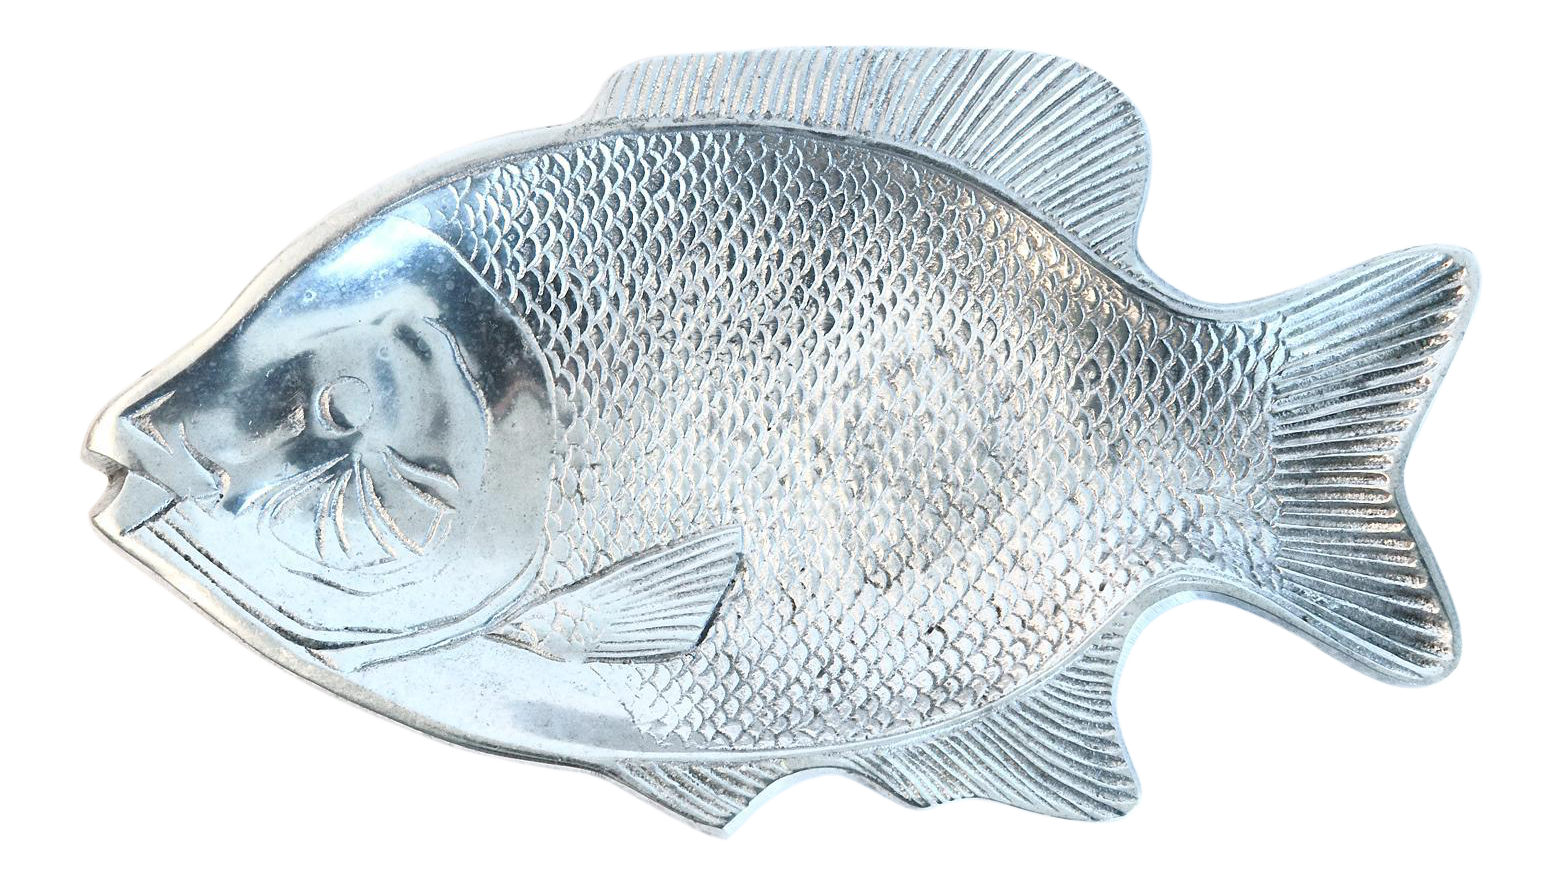 Bluegill drawing simple. Silver aluminum fish platter